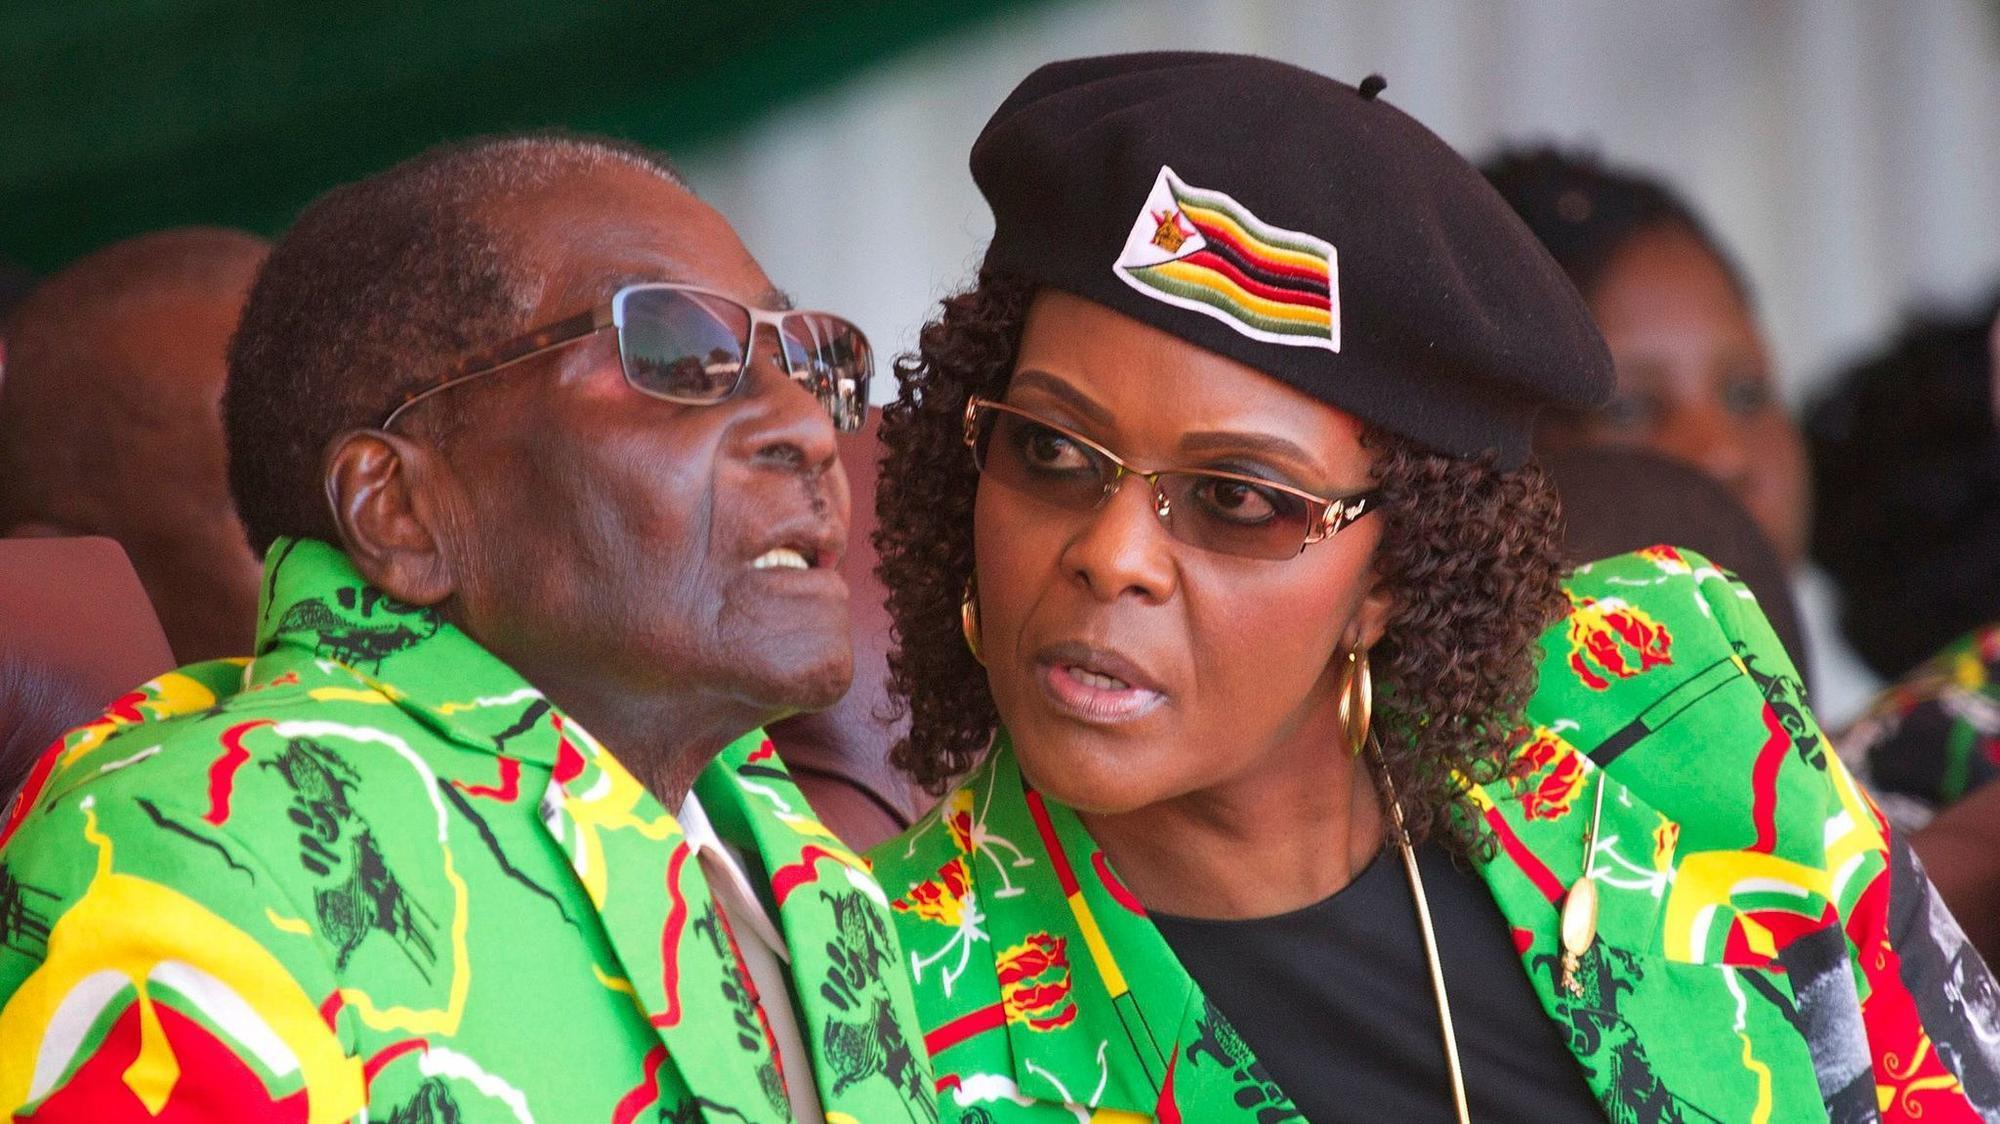 From Typist To First Lady Of Zimbabwe Presidental Contender Did Grace Mugabe S Political Ambitions Topple Her Husband La Times